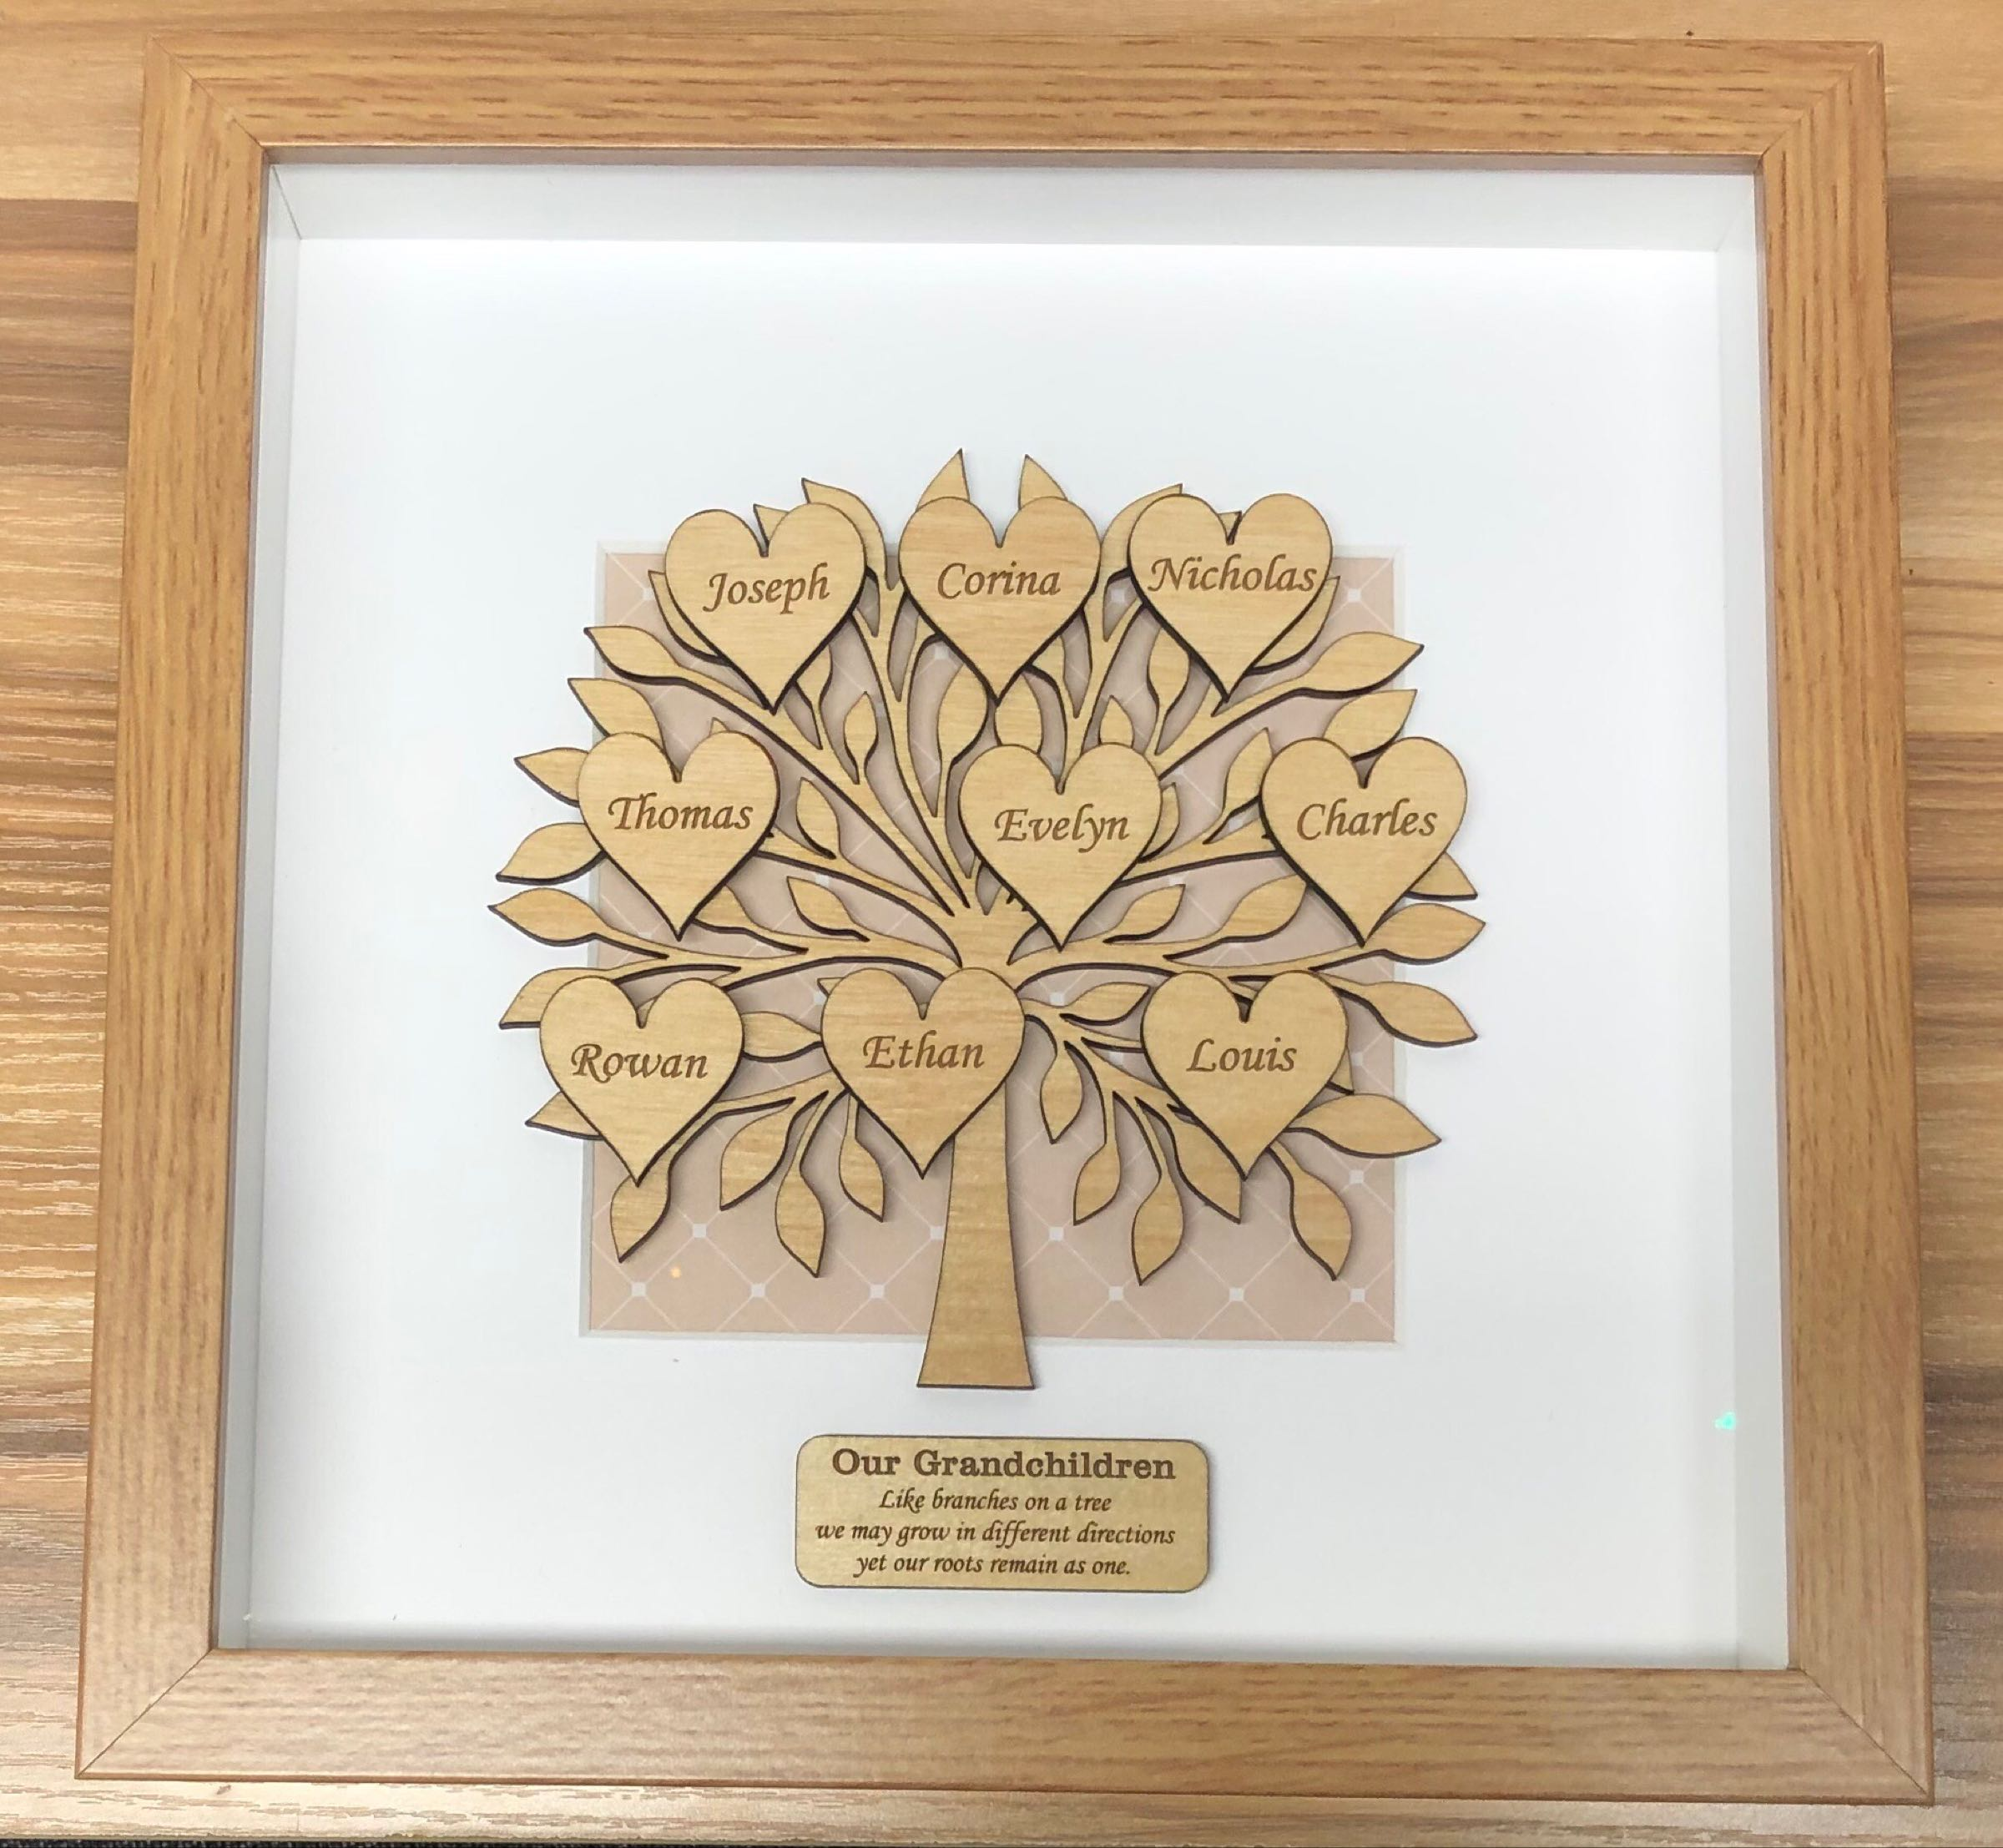 Framed wooden family tree